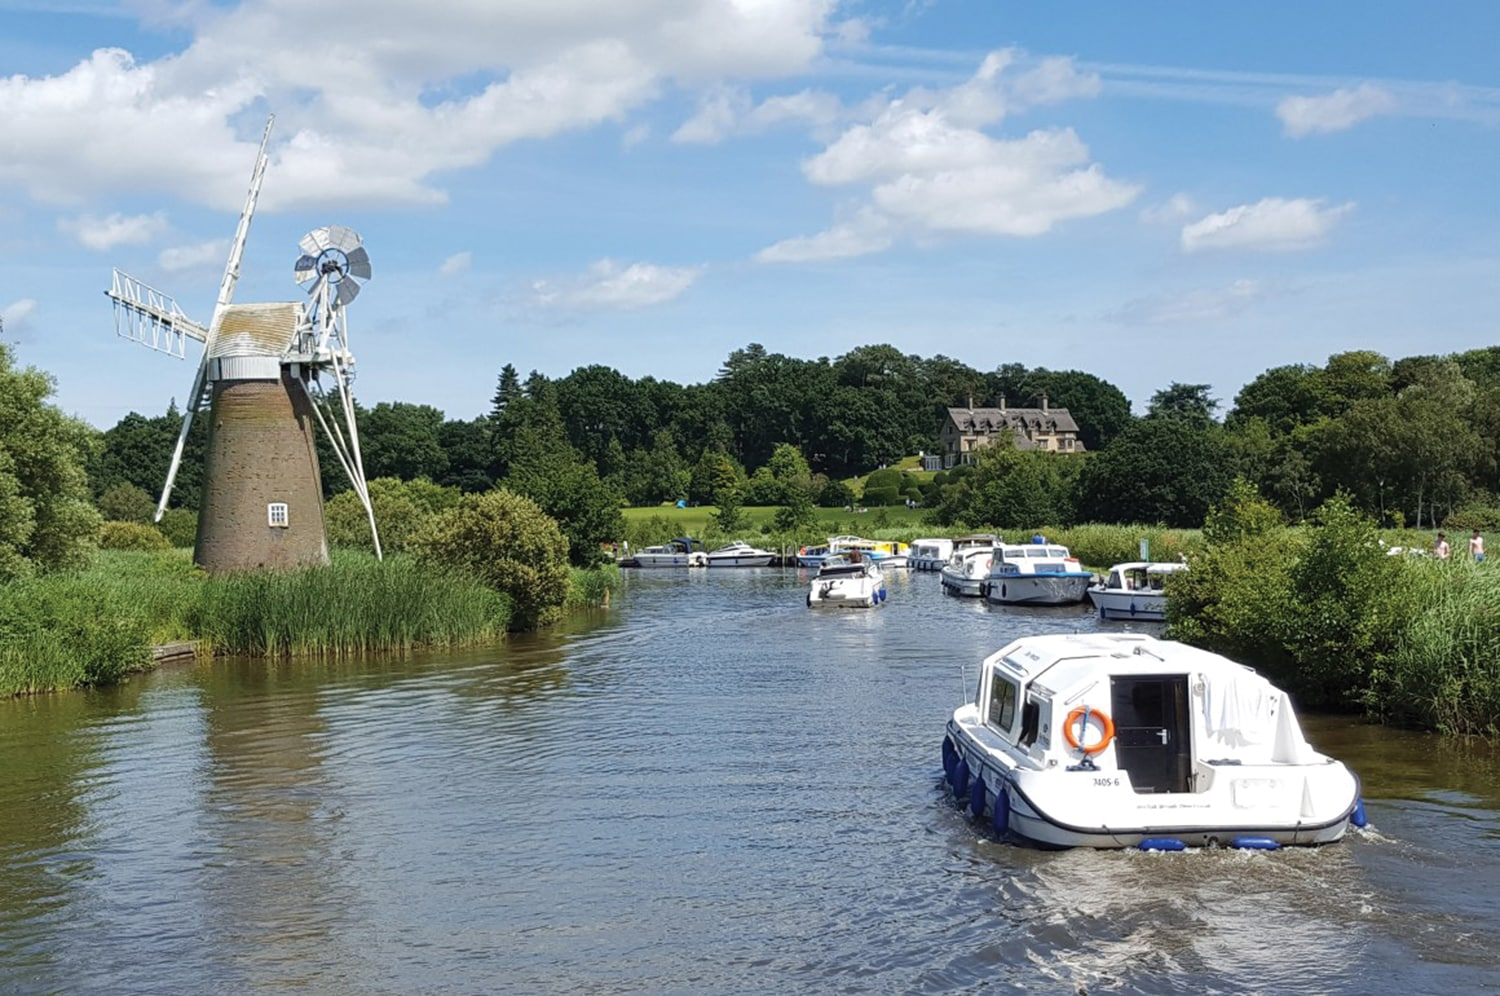 Boating for beginners: Set sail on the Norfolk Broads - Our Place